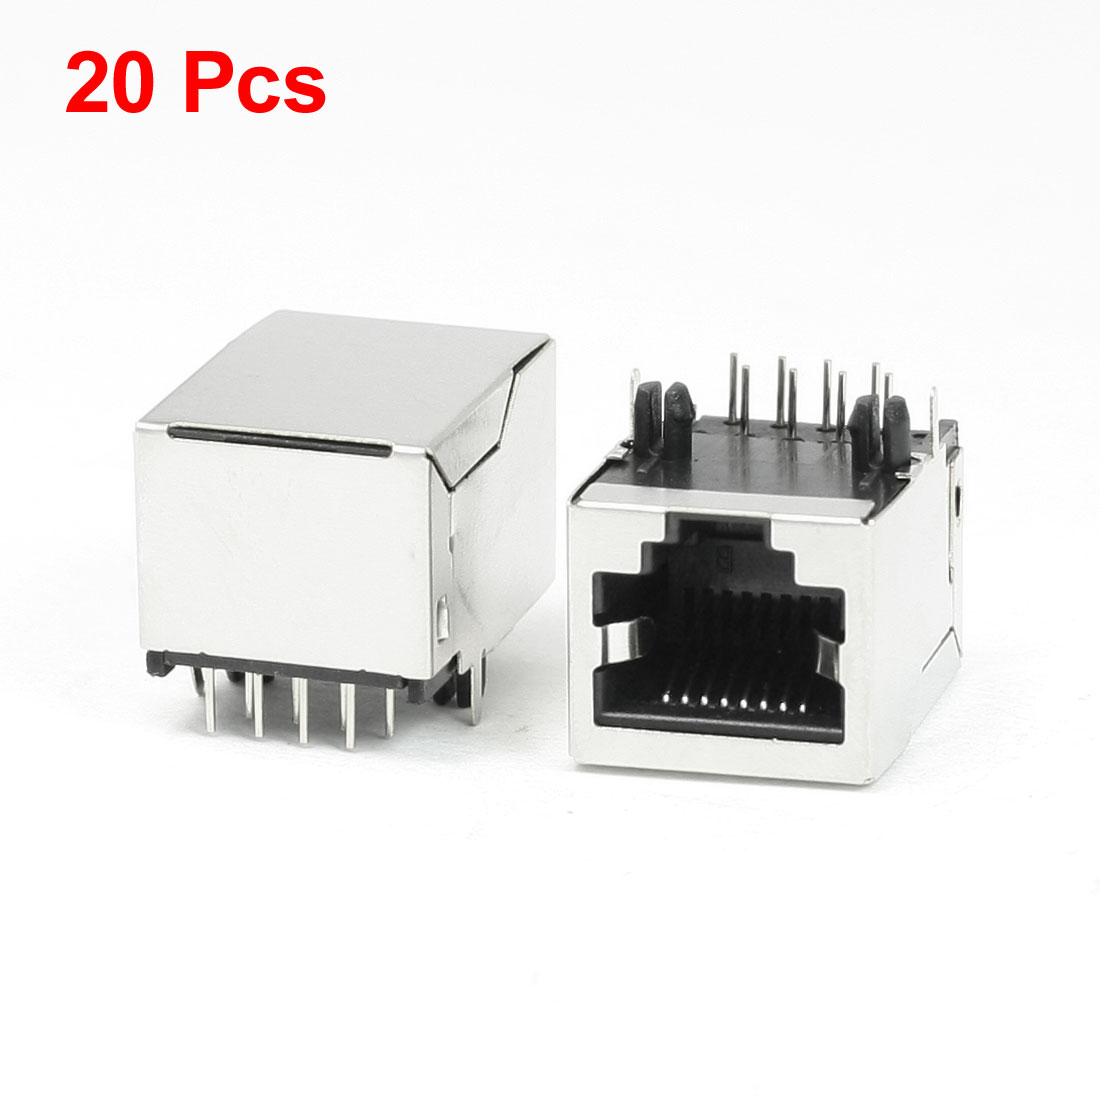 20Pcs RJ45 PCB Jack Network Connector 8 Right Angle Pins 20 x 15.5 x 14mm